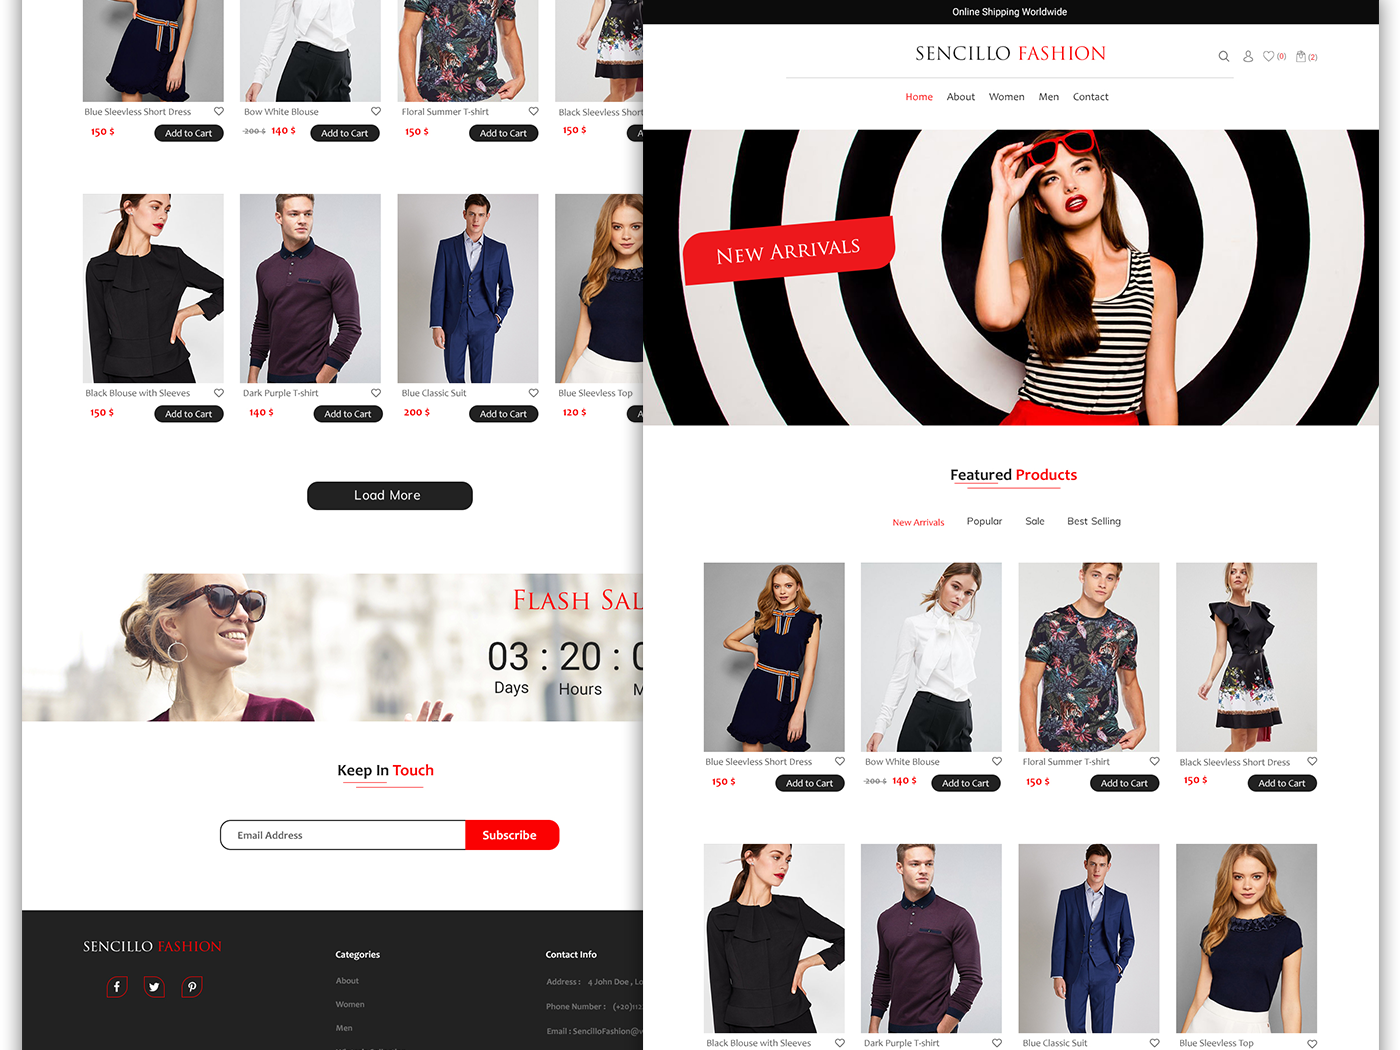 E Commerce Fashion Website Design By Sara Youssry On Dribbble